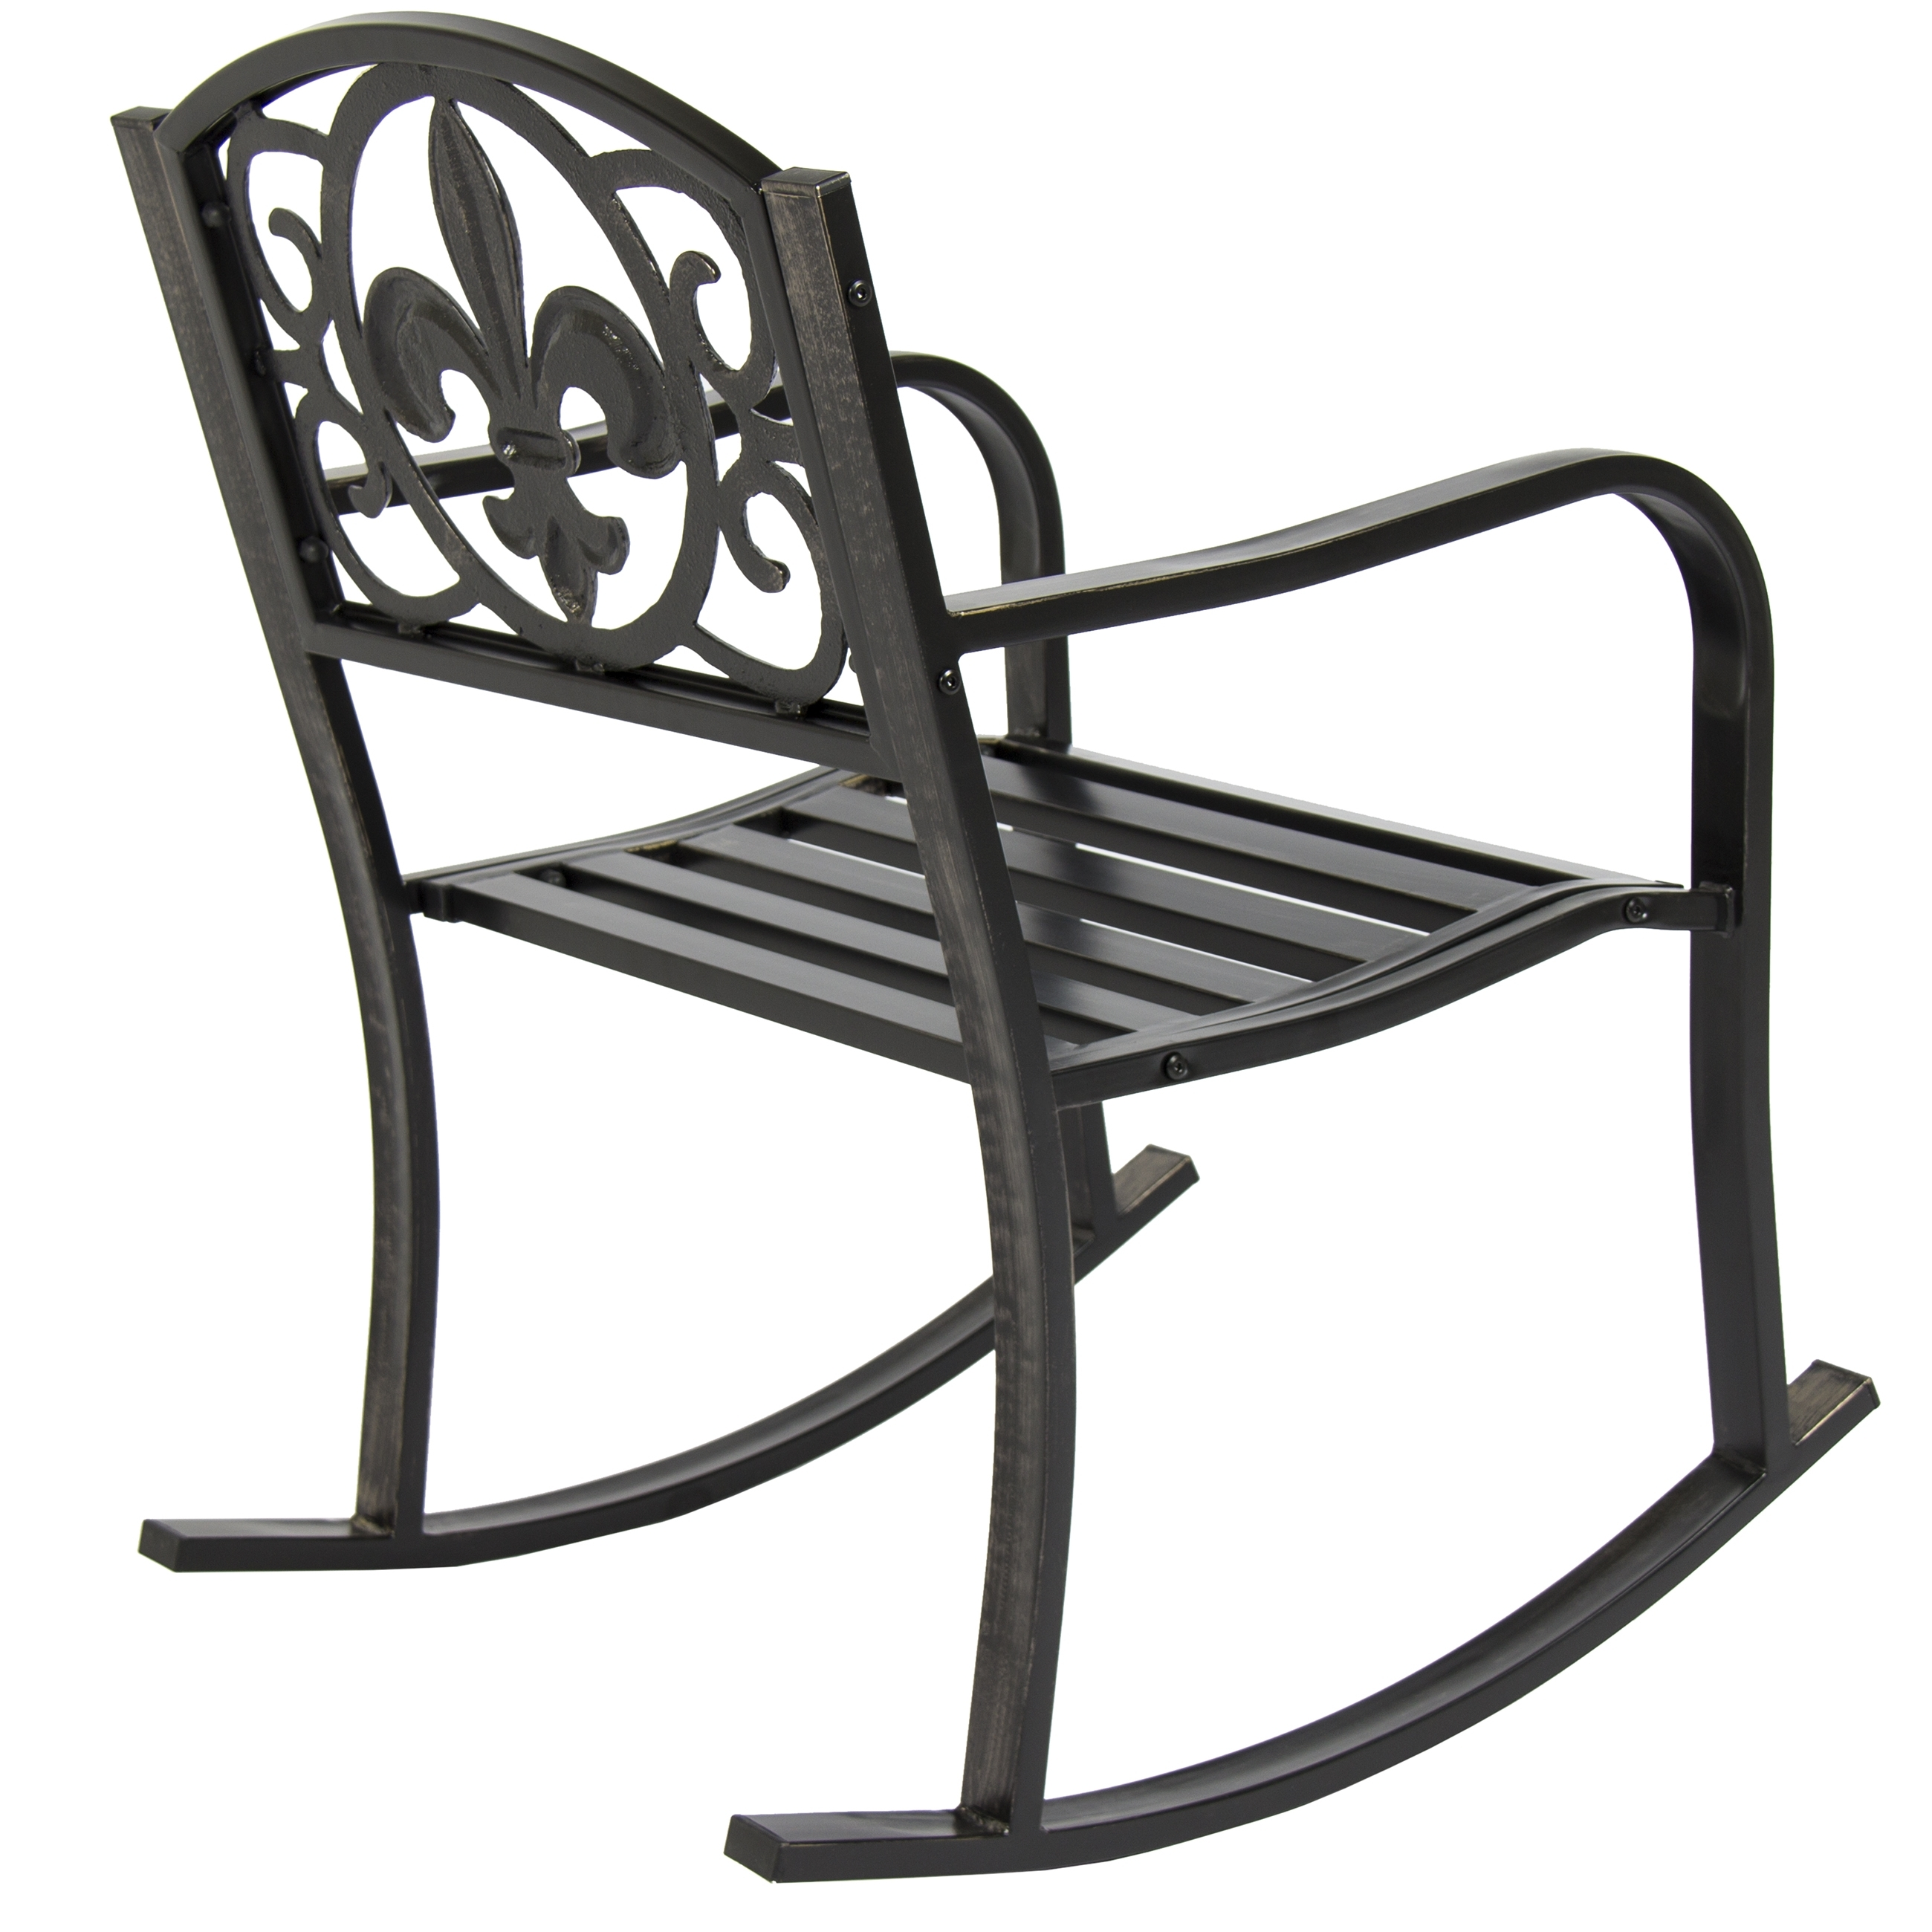 Bestchoiceproducts: Best Choice Products Metal Rocking Chair Seat Within Latest Patio Metal Rocking Chairs (View 3 of 20)